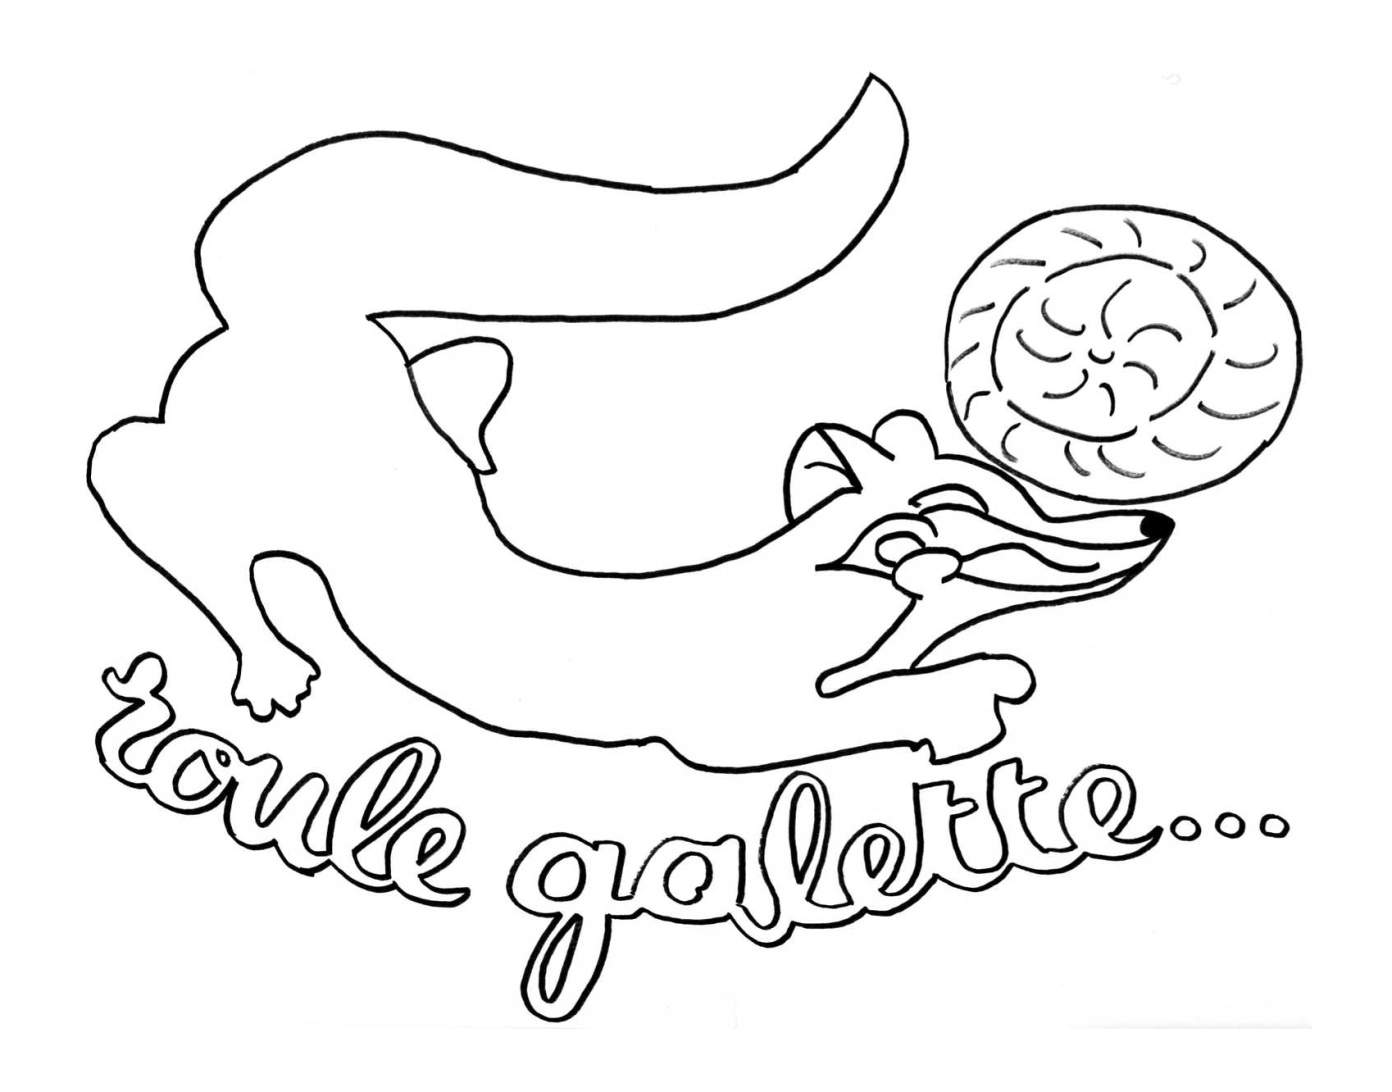 Simple Galette coloring page for children